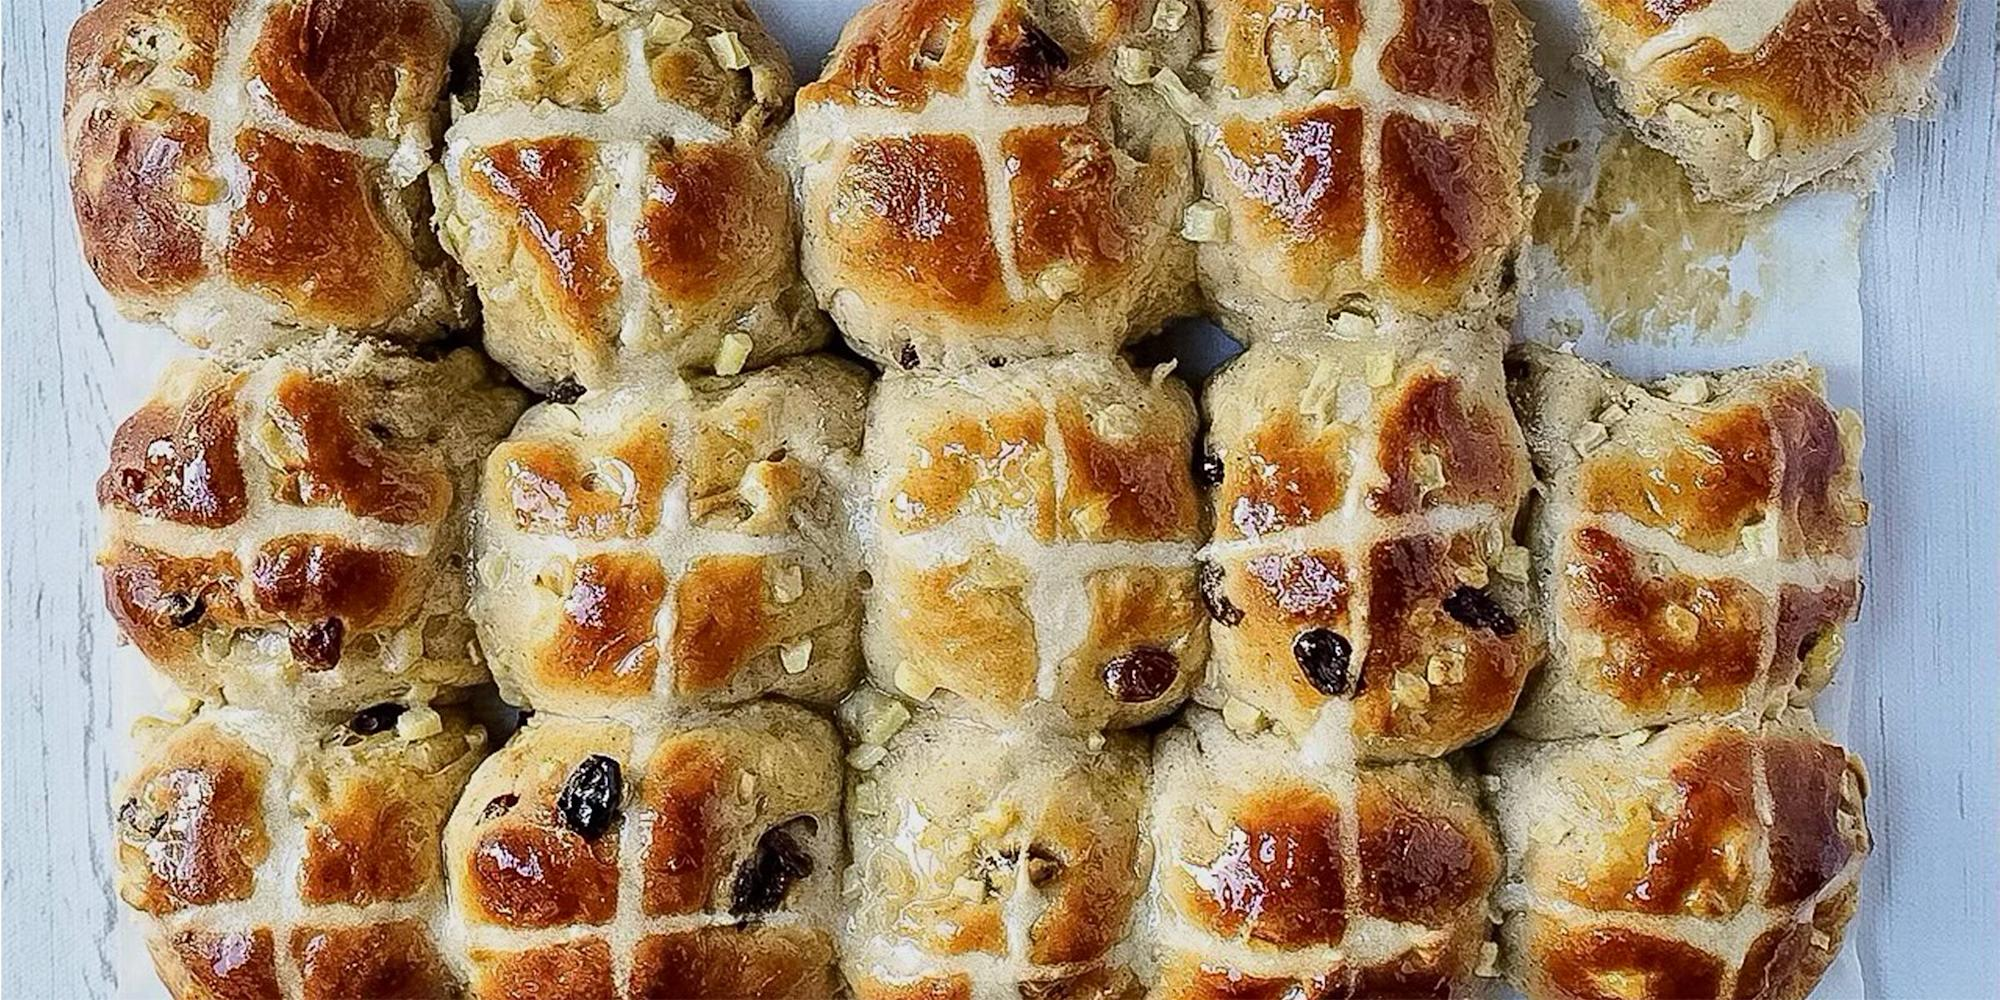 Vallery Lomas makes hot cross buns for Good Friday — and bread pudding for Easter